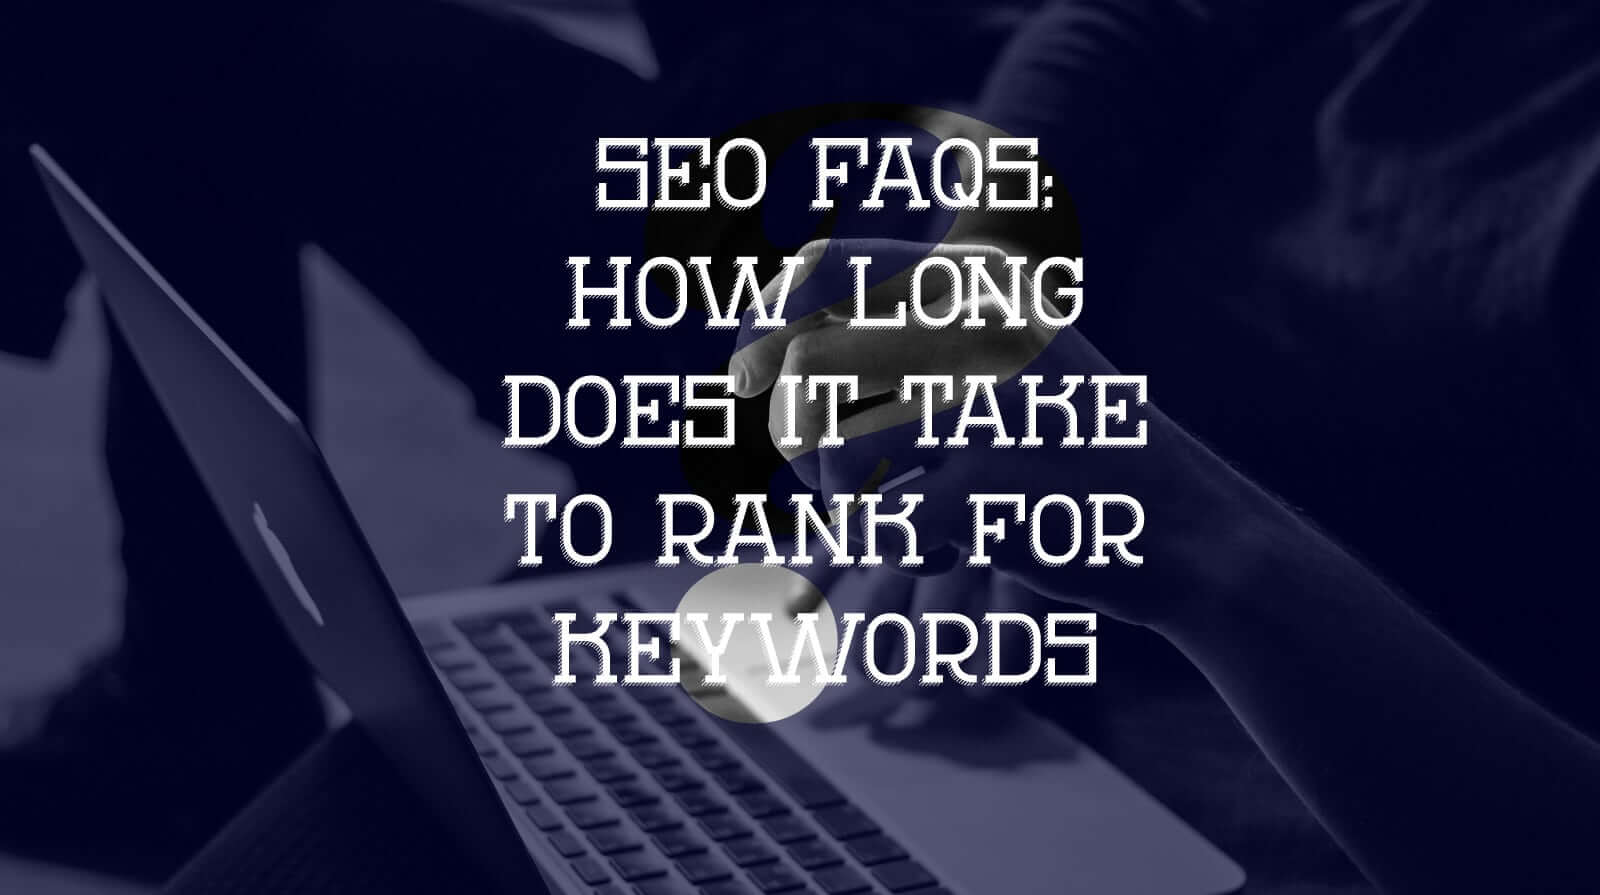 SEO FAQs How Long Does It Take to Rank for Keywords